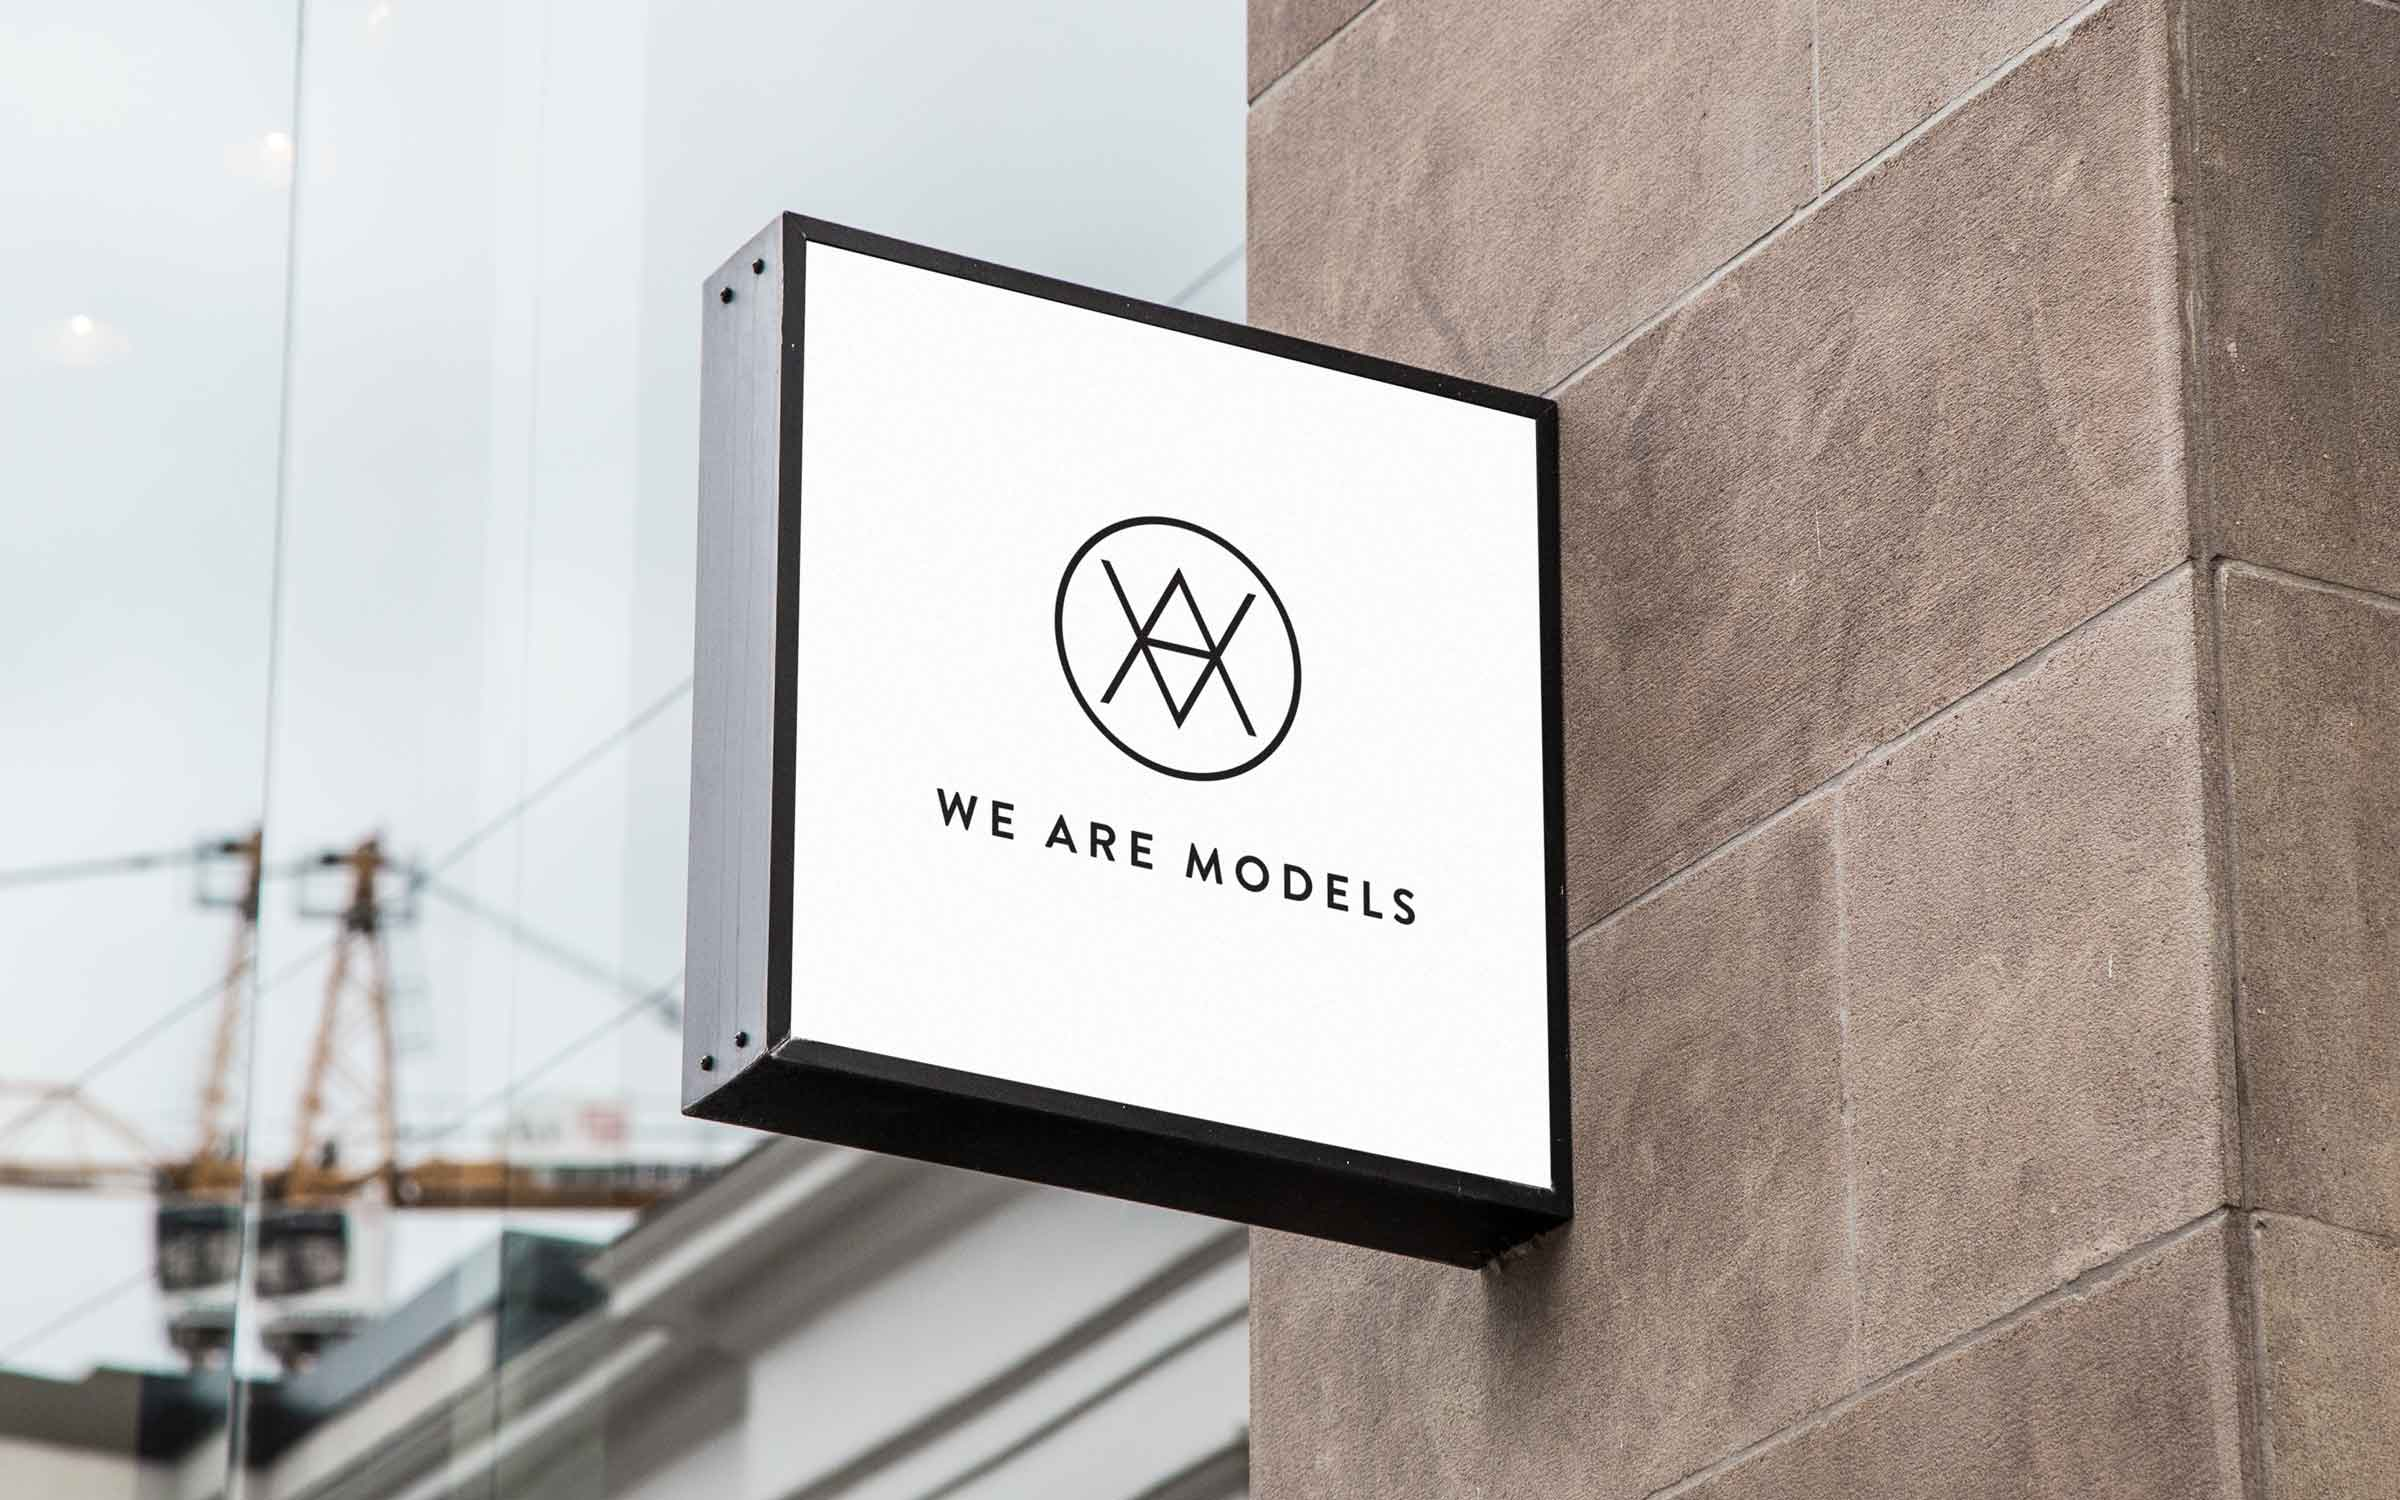 london signage for model agency